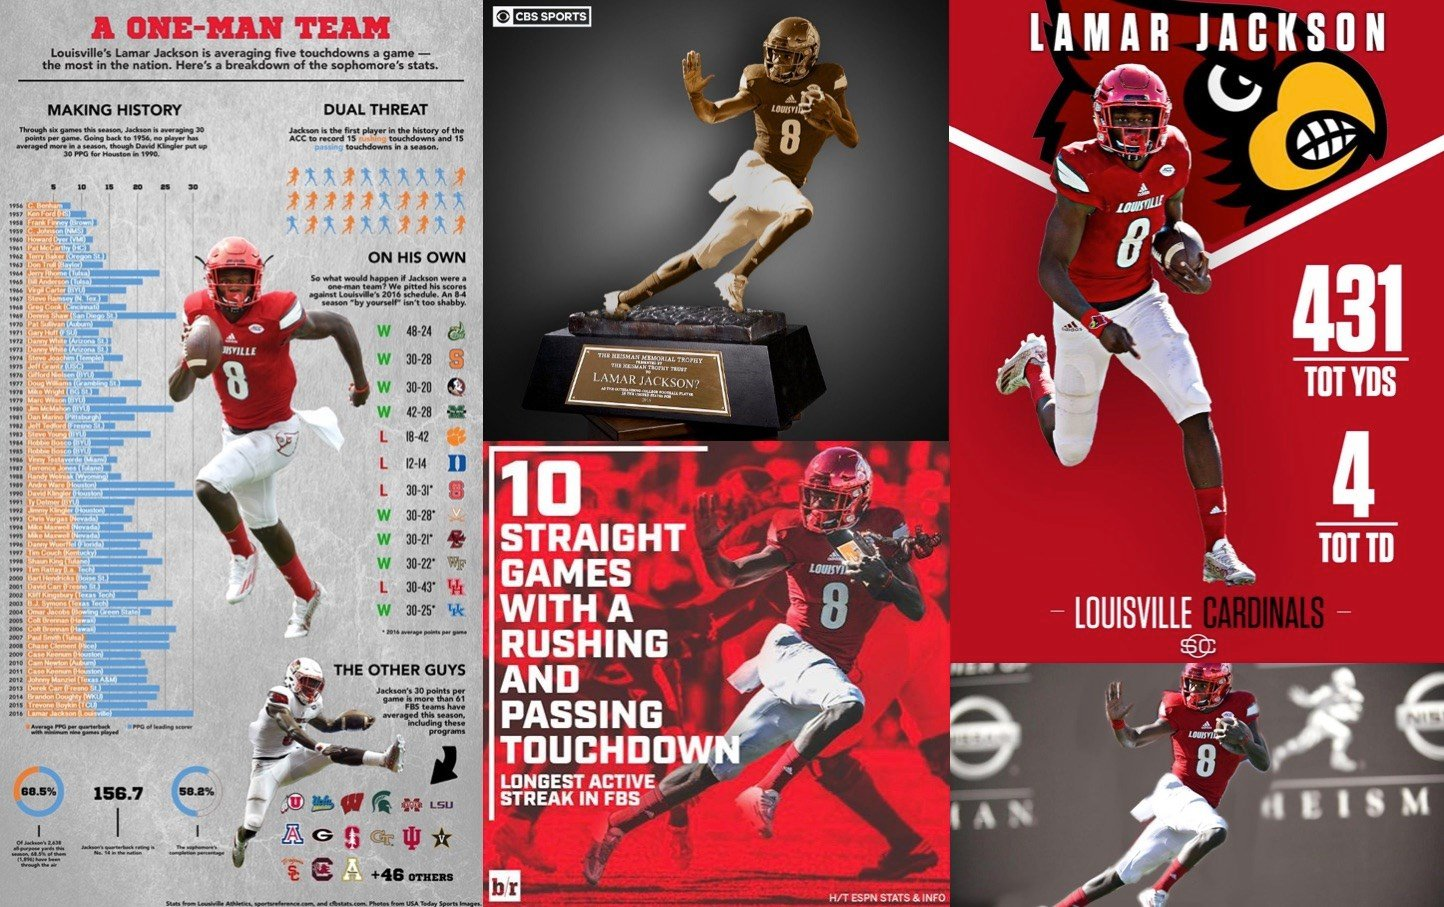 A collage of Lamar Jackson graphics from around sports media on Saturday. From left, graphics from NCAA.com, CBS, ESPN, Bleacher Report and SB Nation